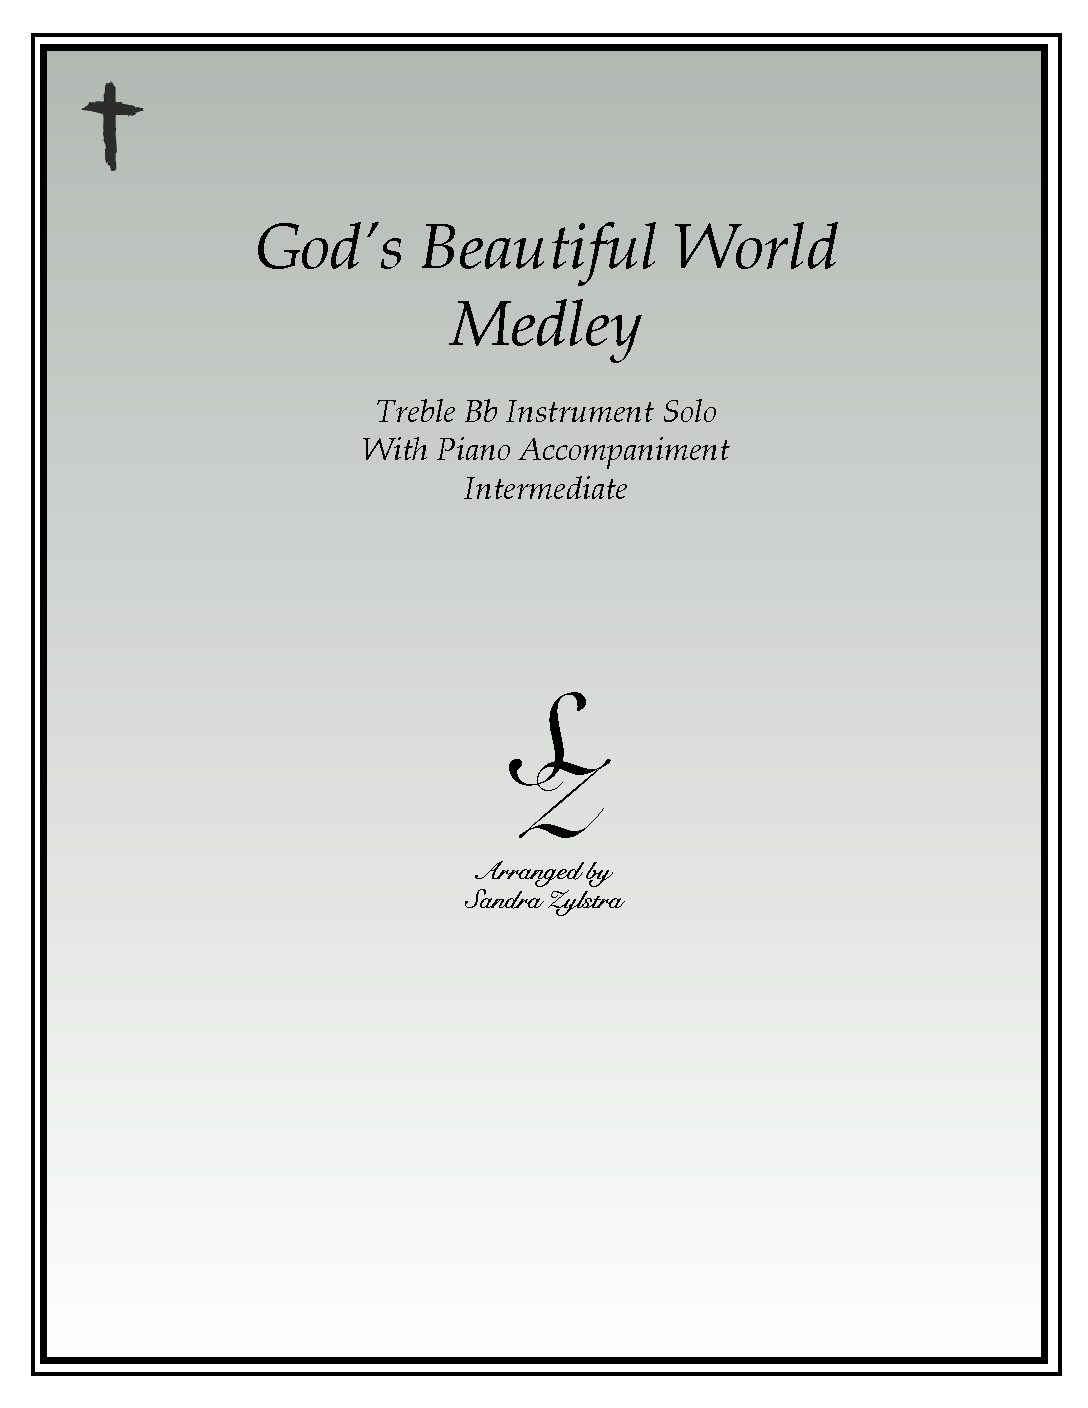 God's Beautiful World Medley -Treble Bb Instrument Solo